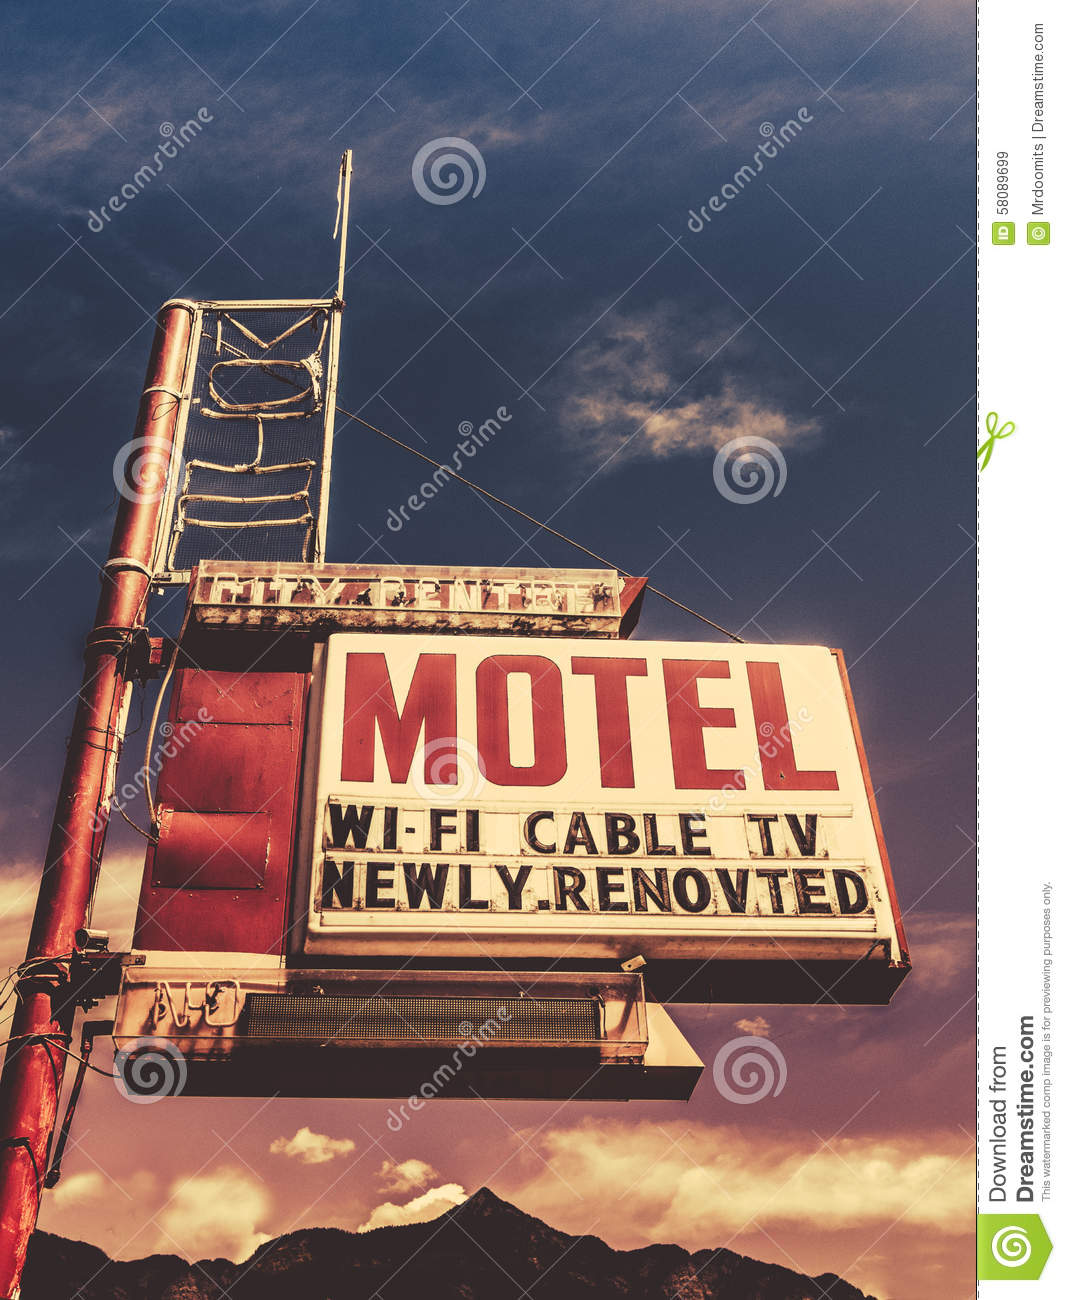 Retro Vintage Motel Sign Stock Photo - Image: 58089699